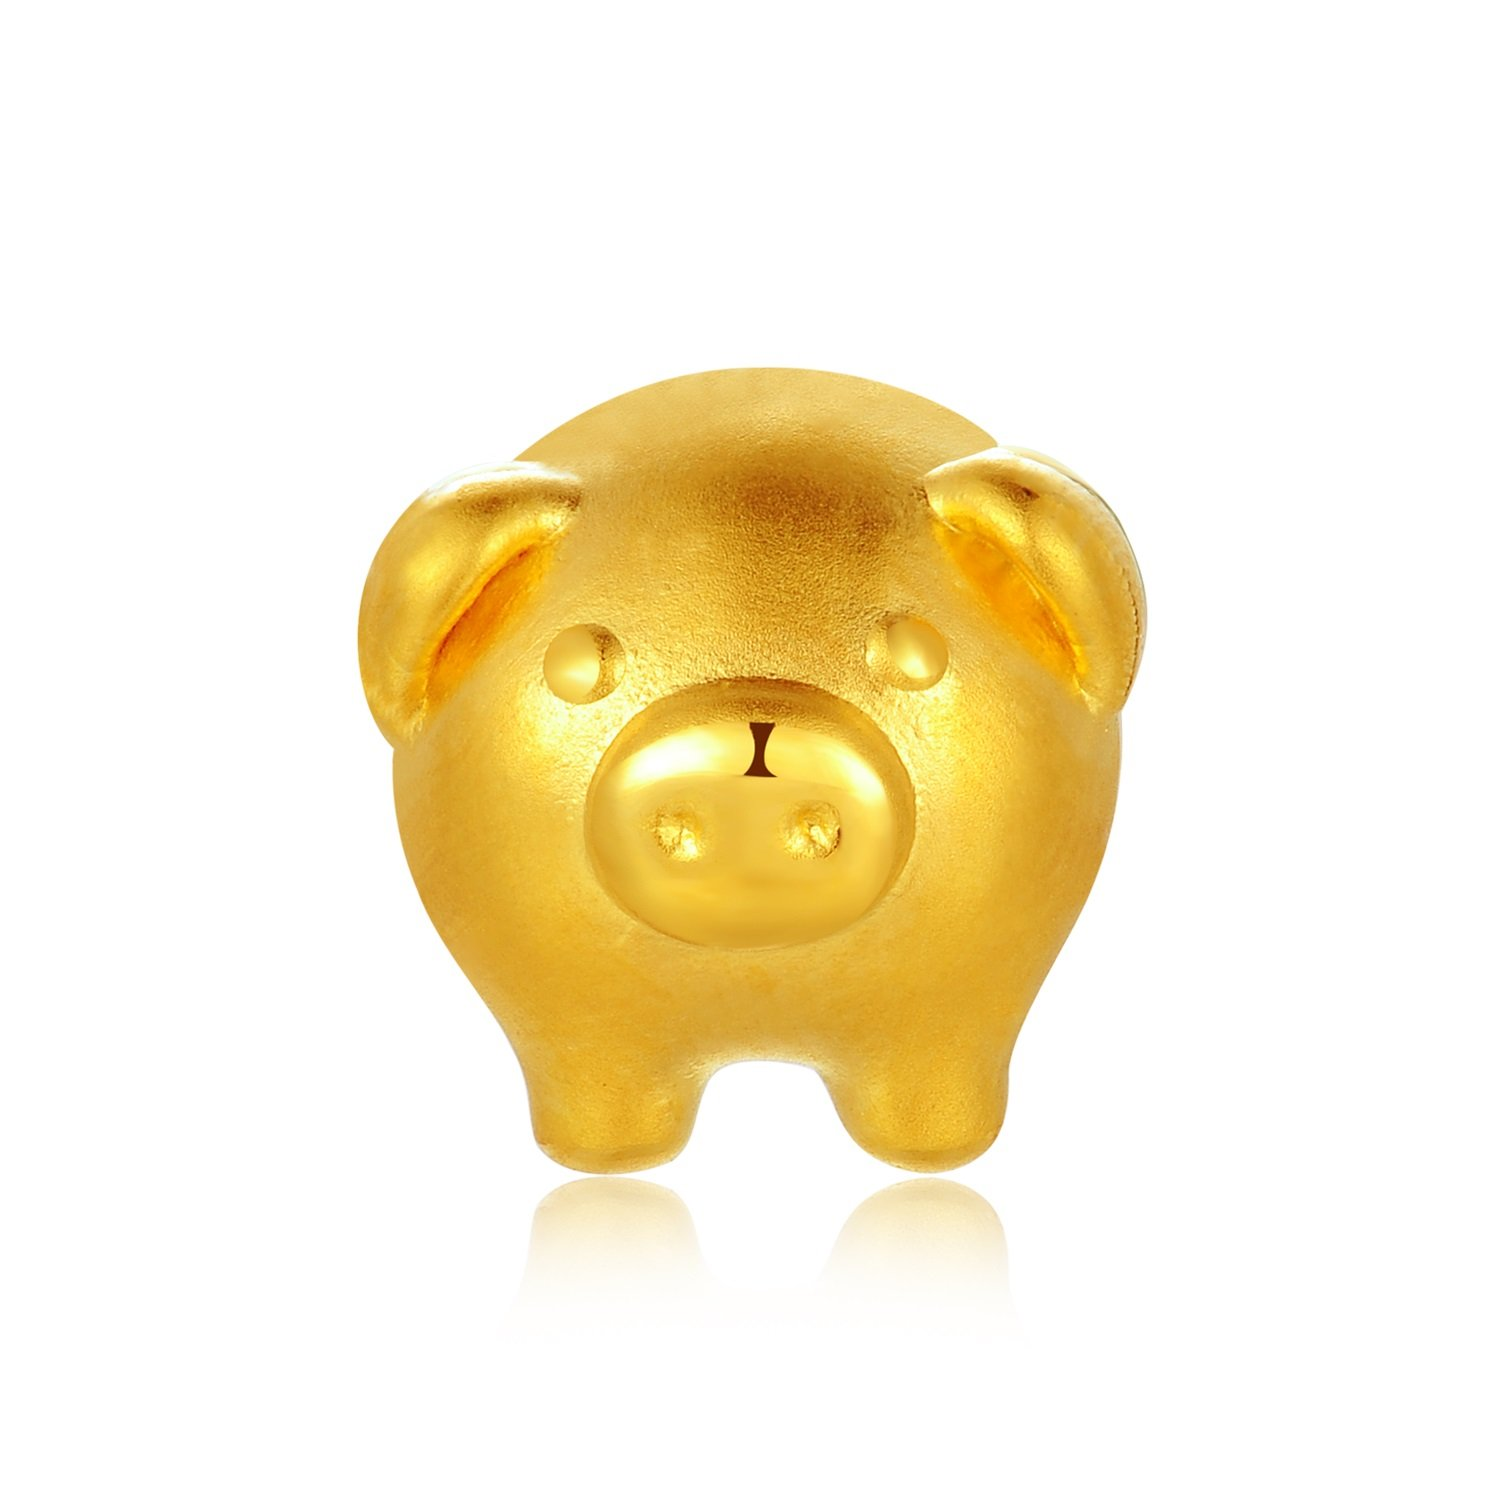 MaBelle 24K Gold Baby Fortune Charm Piggy Pig (Bracelet Chain Not Included), Gift For Newborn Baby Boys and Girls